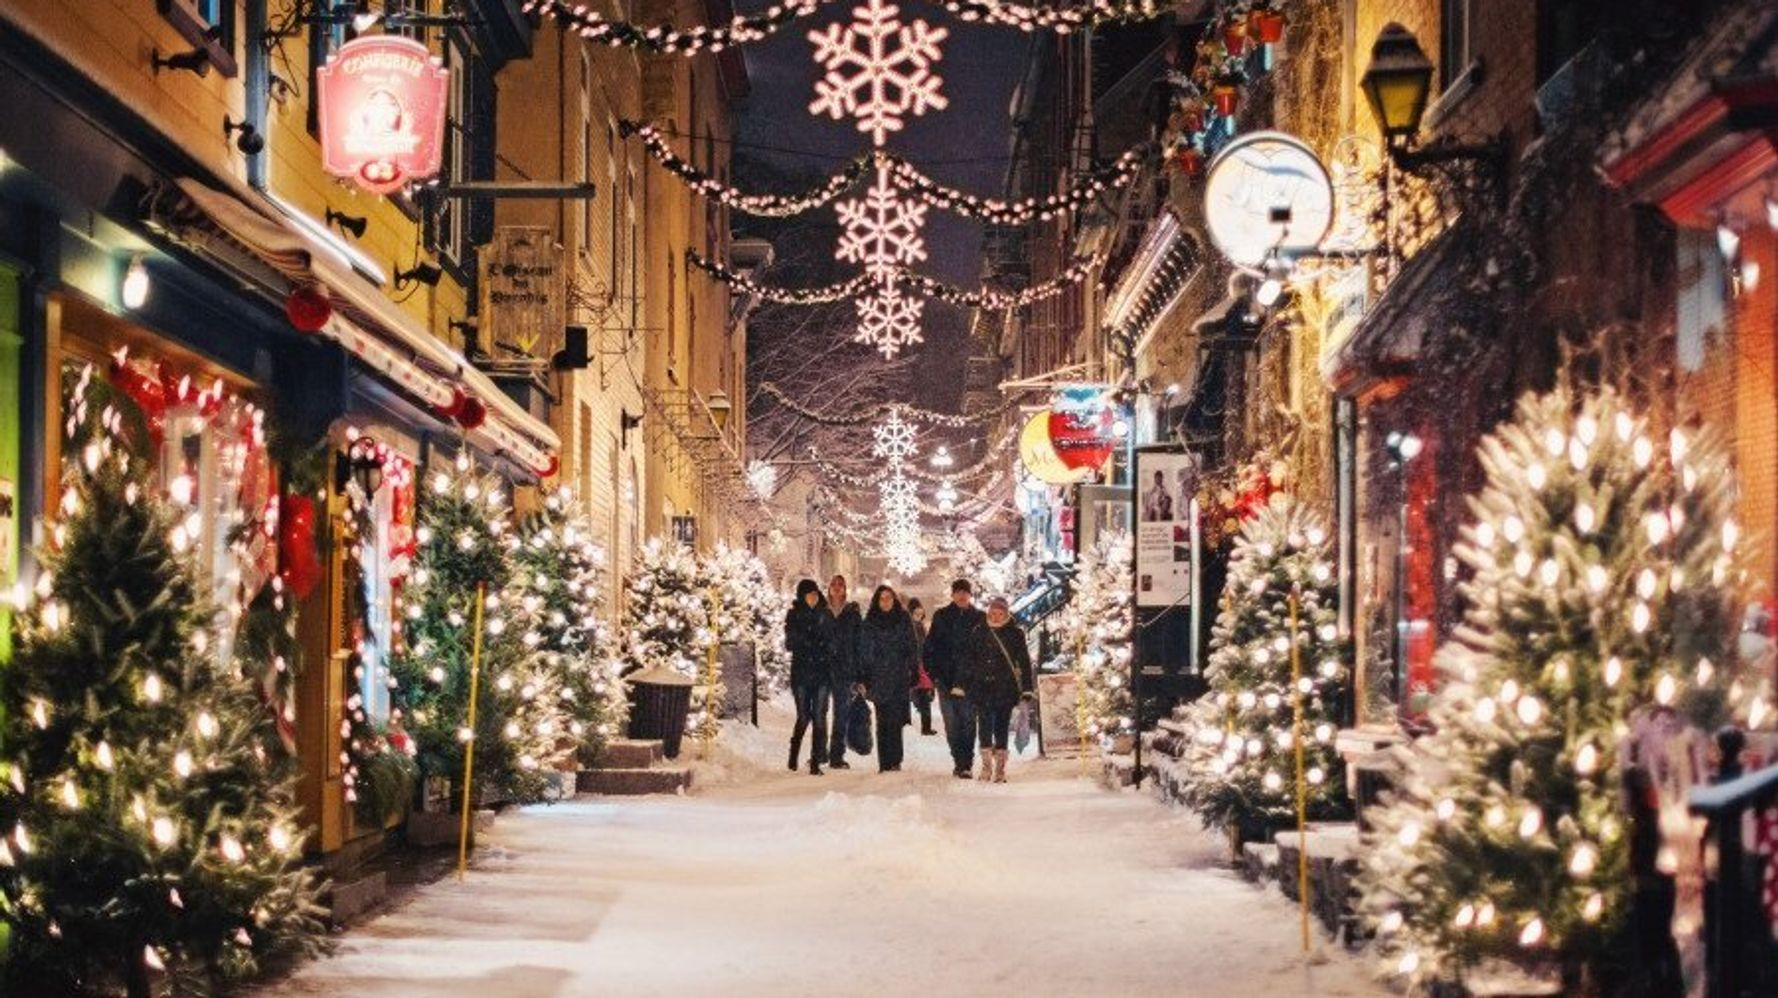 5 Ways Quebec City Can Give You A Fairytale Holiday | HuffPost